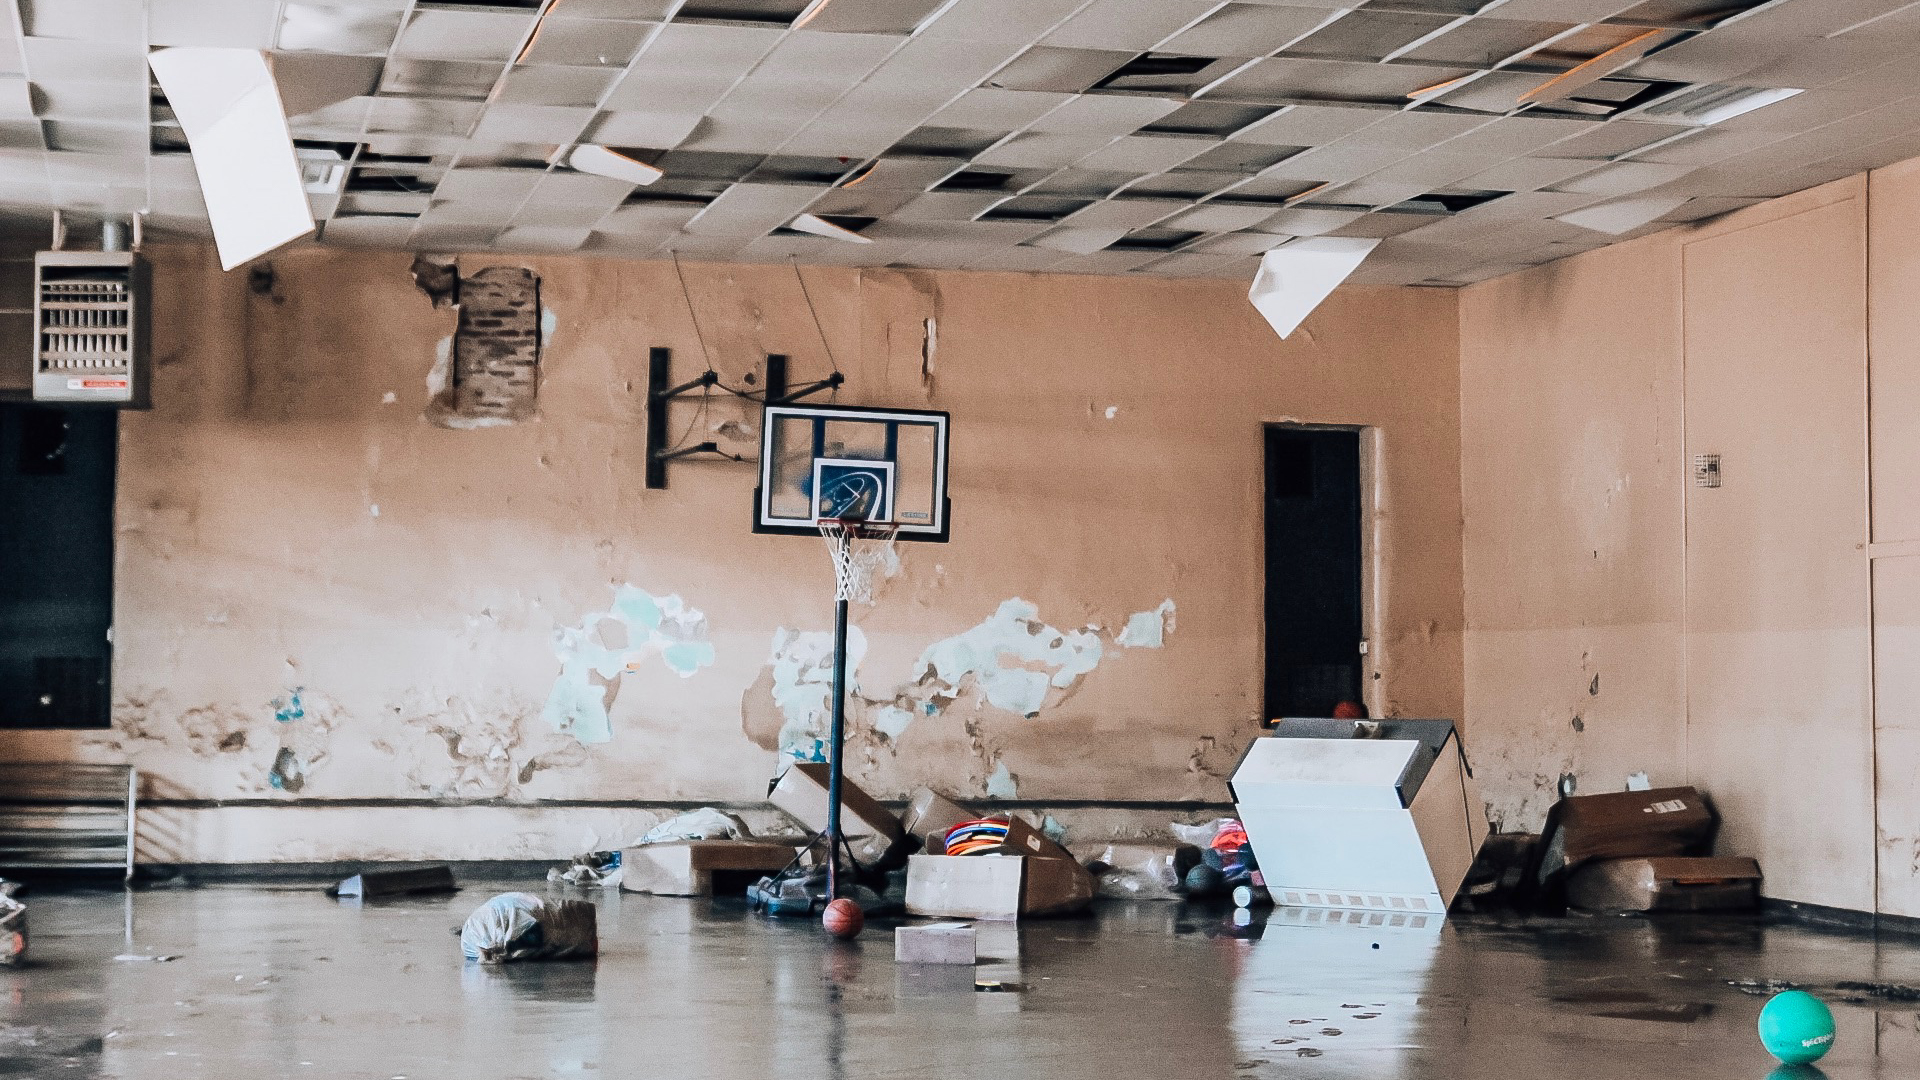 A school gym in eastern Oklahoma was just one of many buildings flooded by ongoing rains in the region, which have displaced thousands. (Photo courtesy of Stigler Health and Wellness Center)